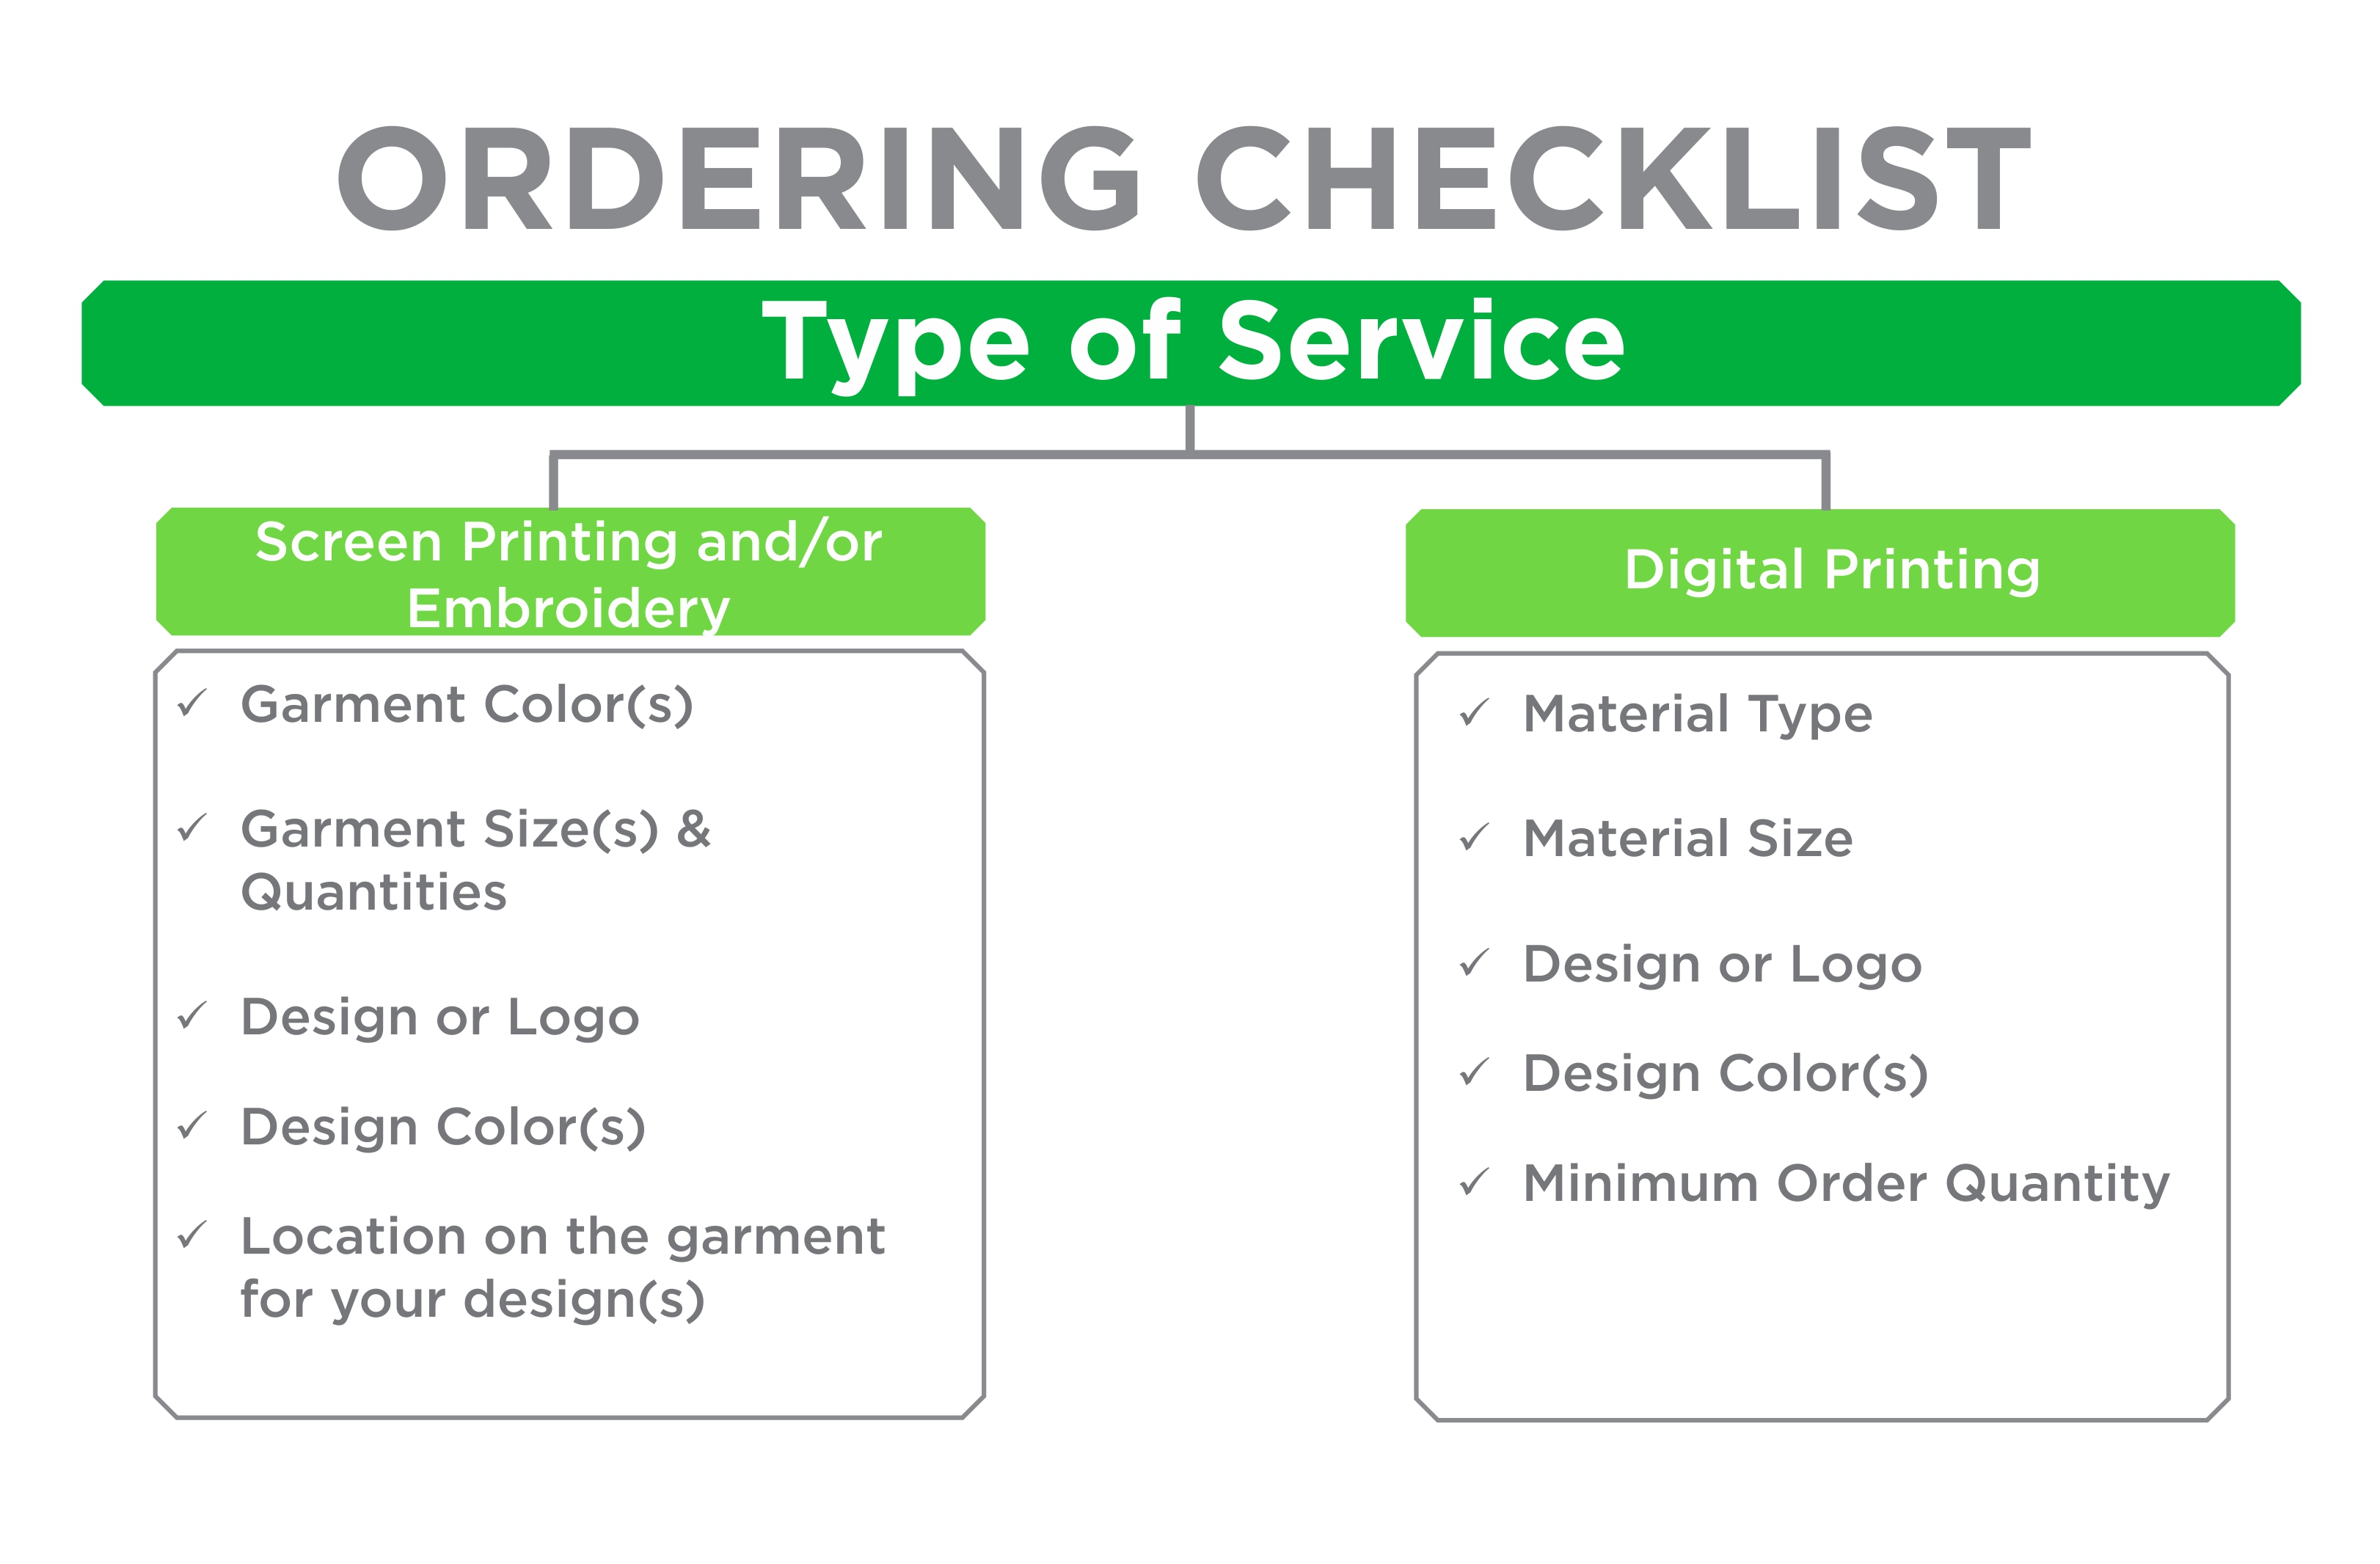 374abd6f8 Ordering Checklist to Streamline the Process - ATS Printing